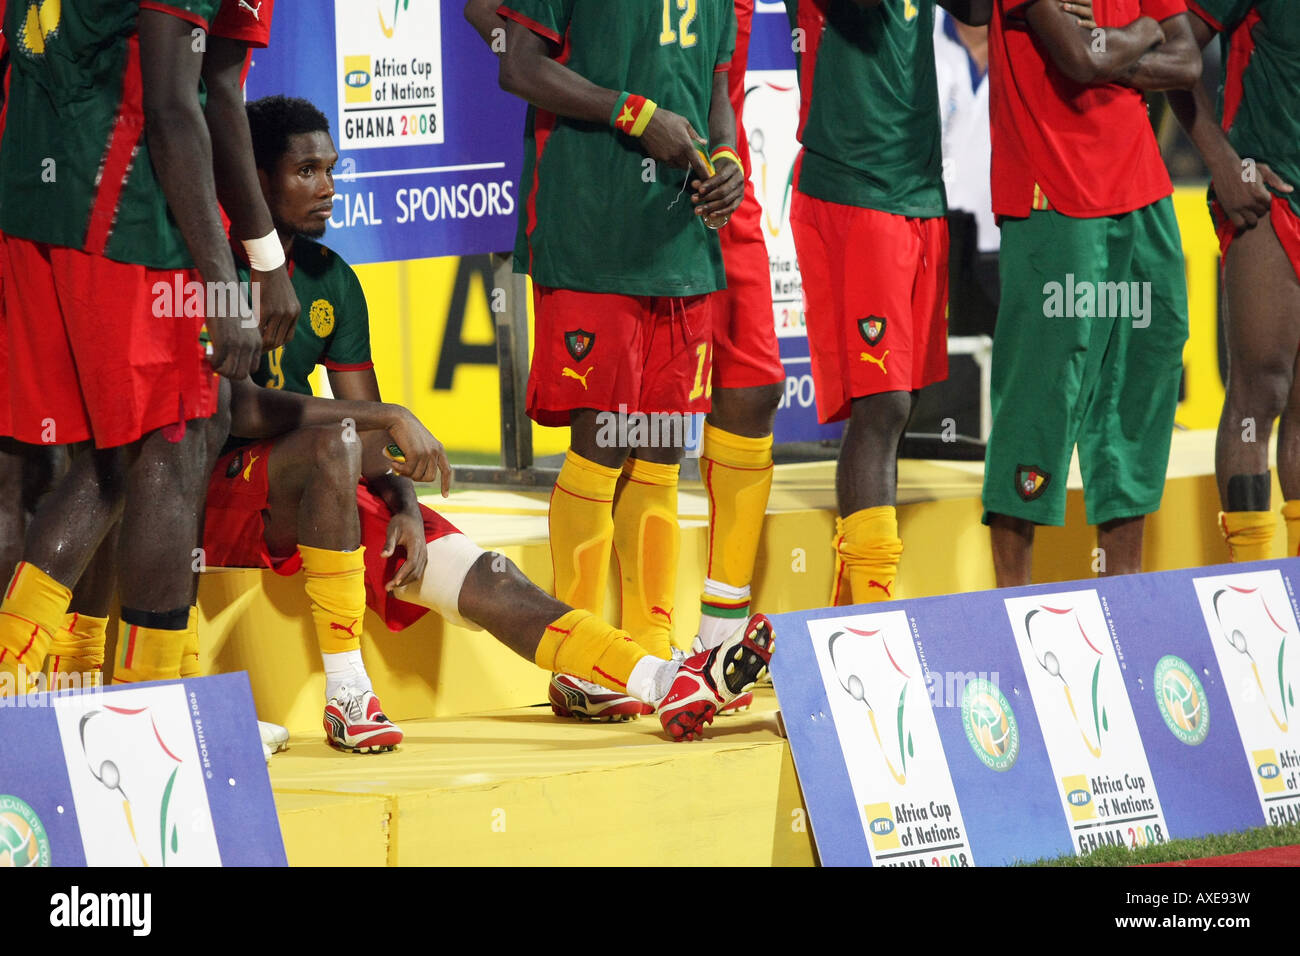 Cameroon defeat, Africa Cup of Nations 2008 - Stock Image